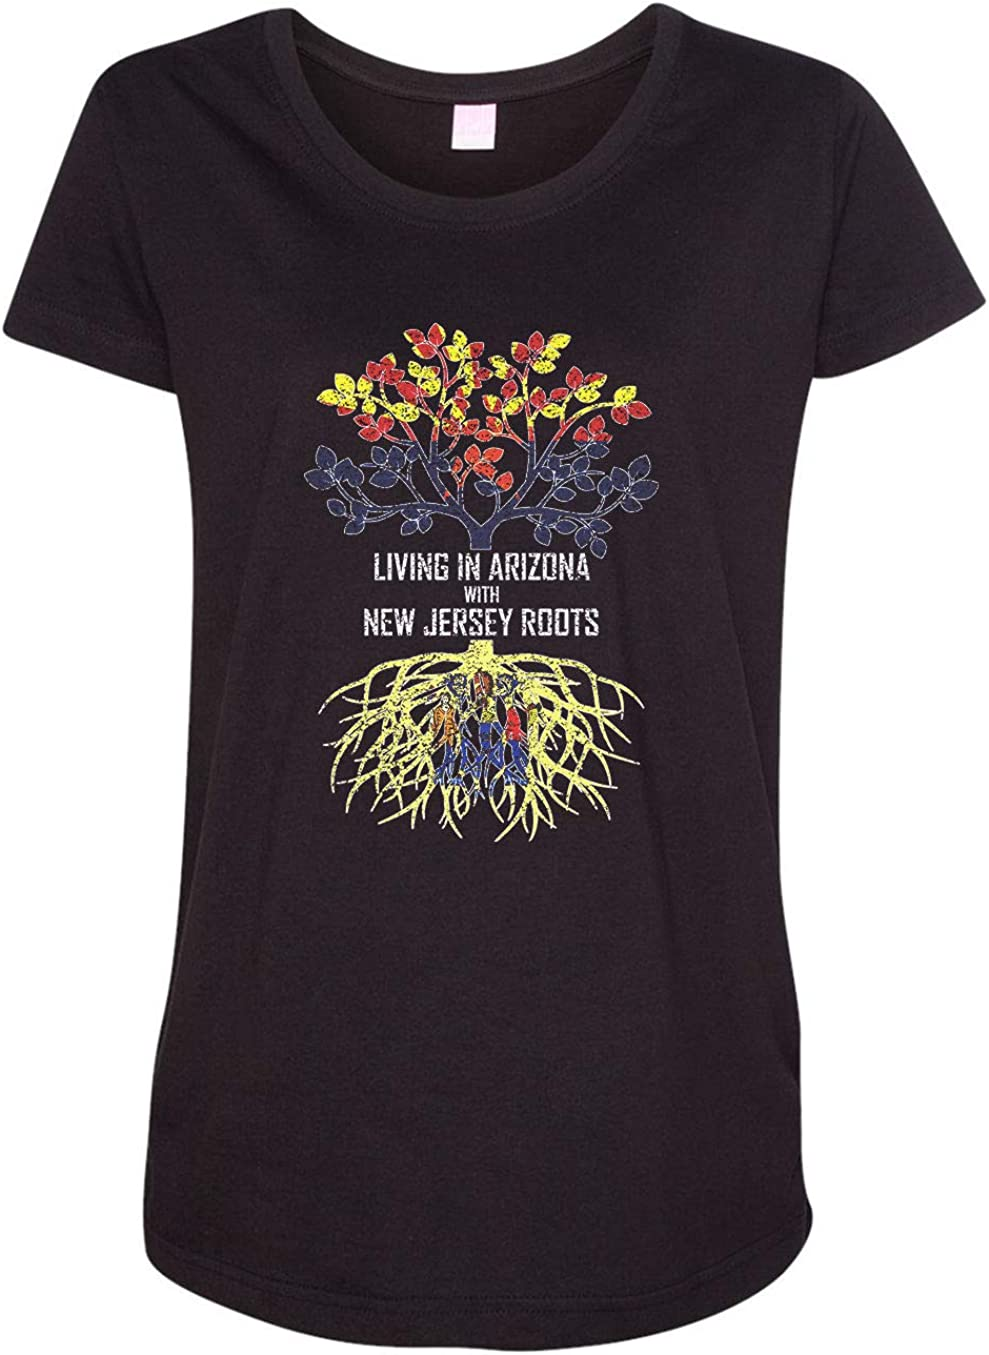 HARD EDGE DESIGN Women's Living in Arizona with New Jersey Roots T-Shirt